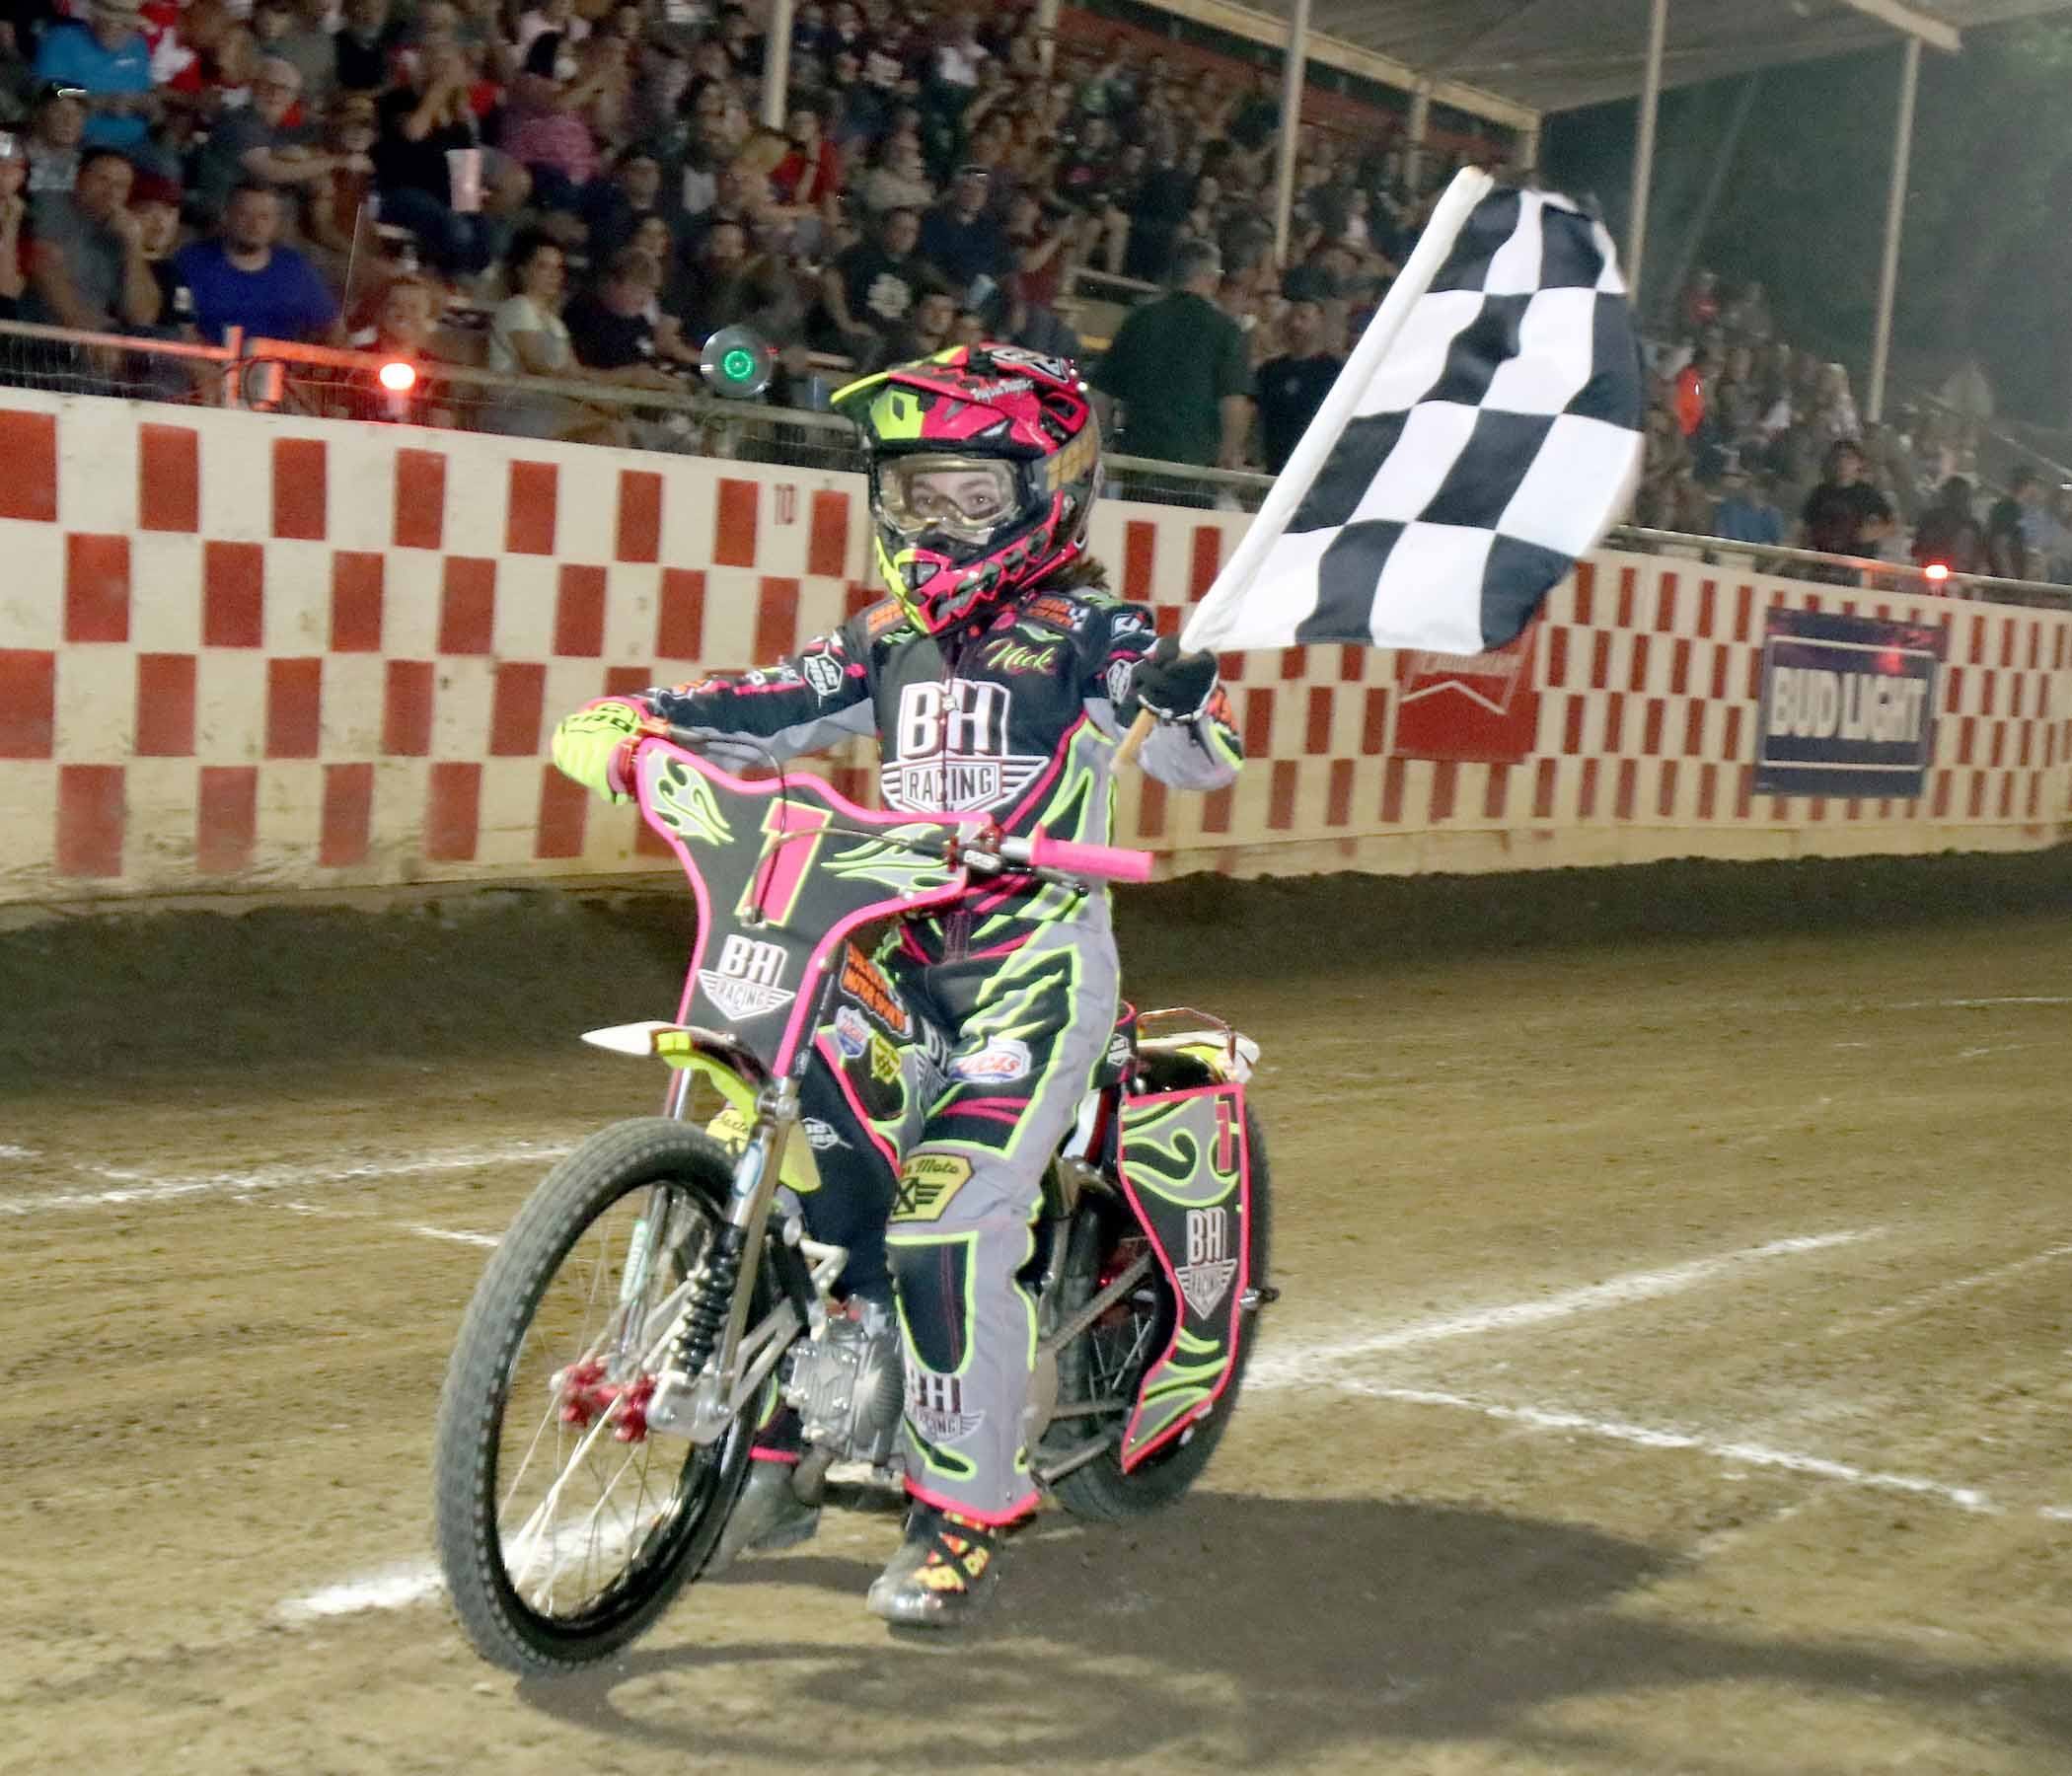 Nick Hohlbein with the checkered flag at Fast Fridays Motorcycle Speedway